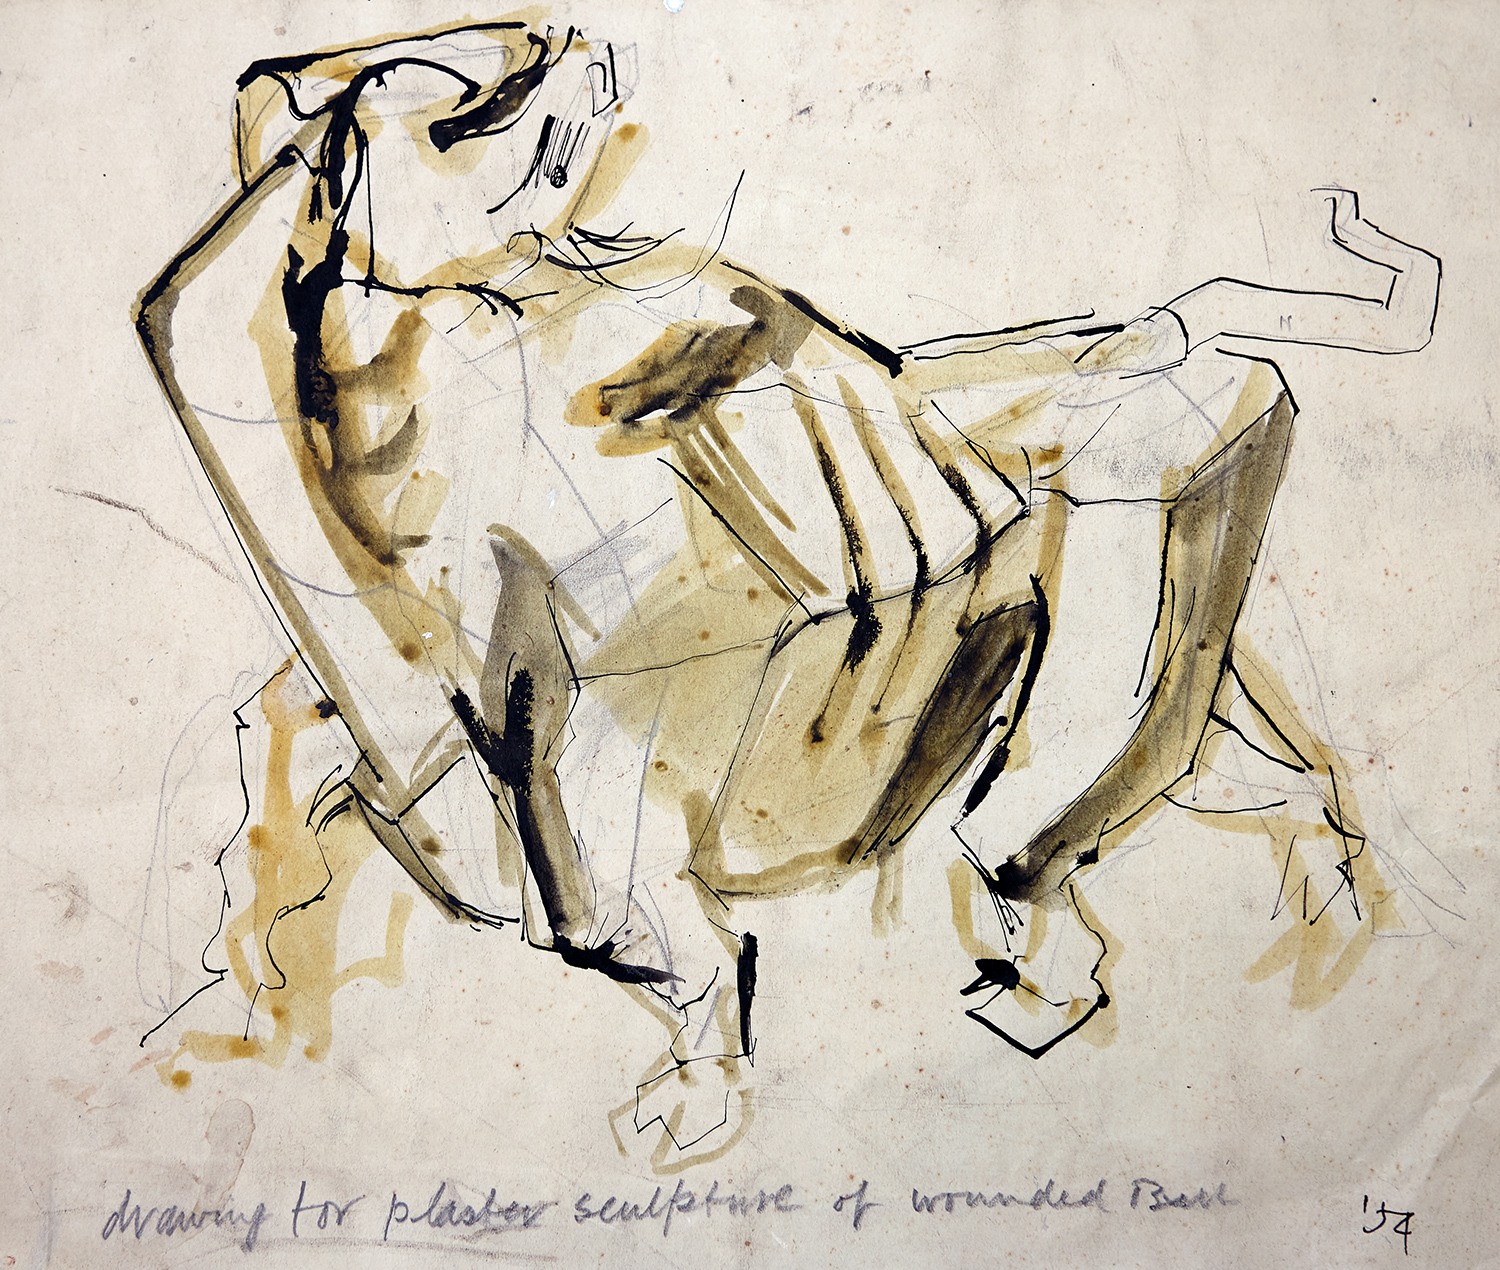 Drawing For Plaster Sculpture Of Wounded Bull  1954, 25 x 34.5 cm